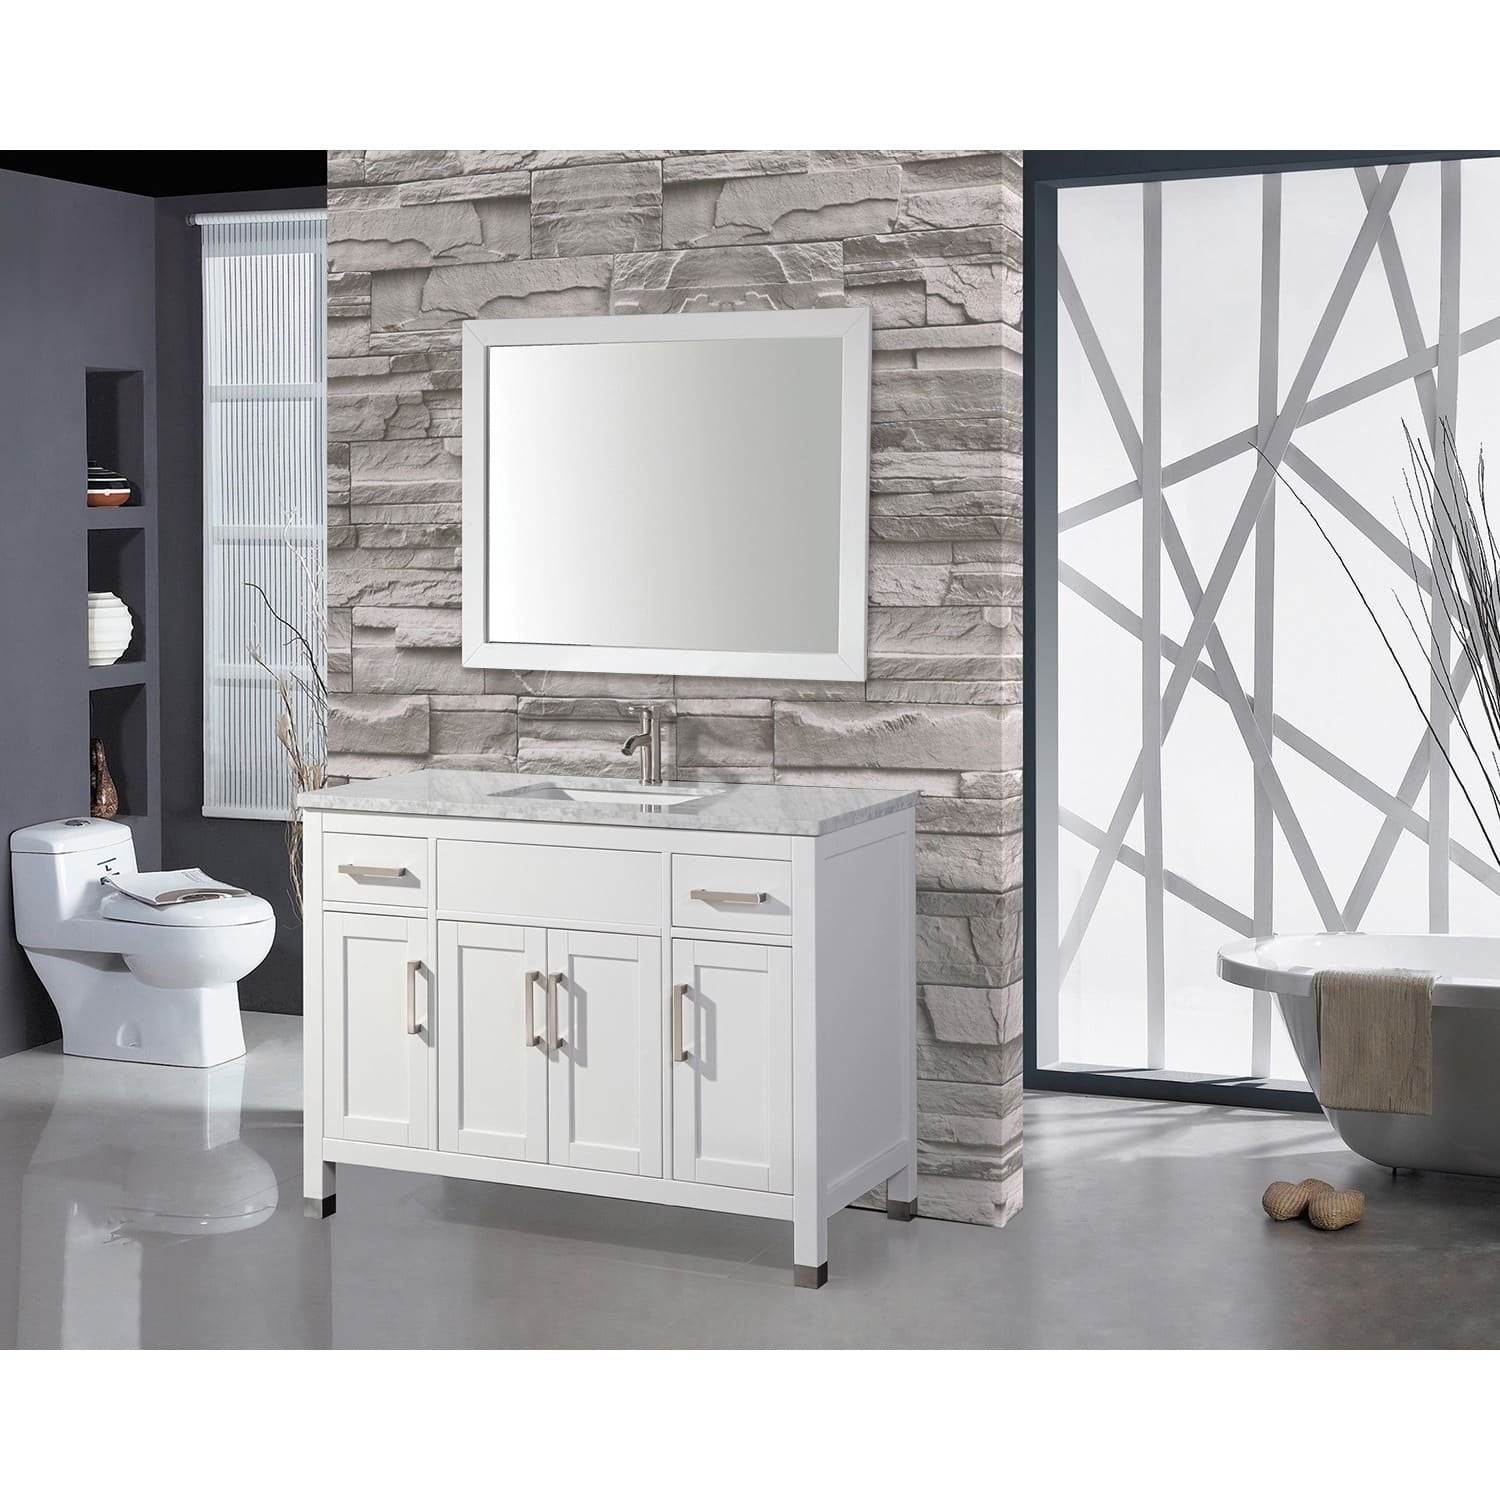 Mtd Vanities Ricca 60 Inch Single Sink Bathroom Vanity Set With Free Mirror And Faucet Shipping Today 10428047